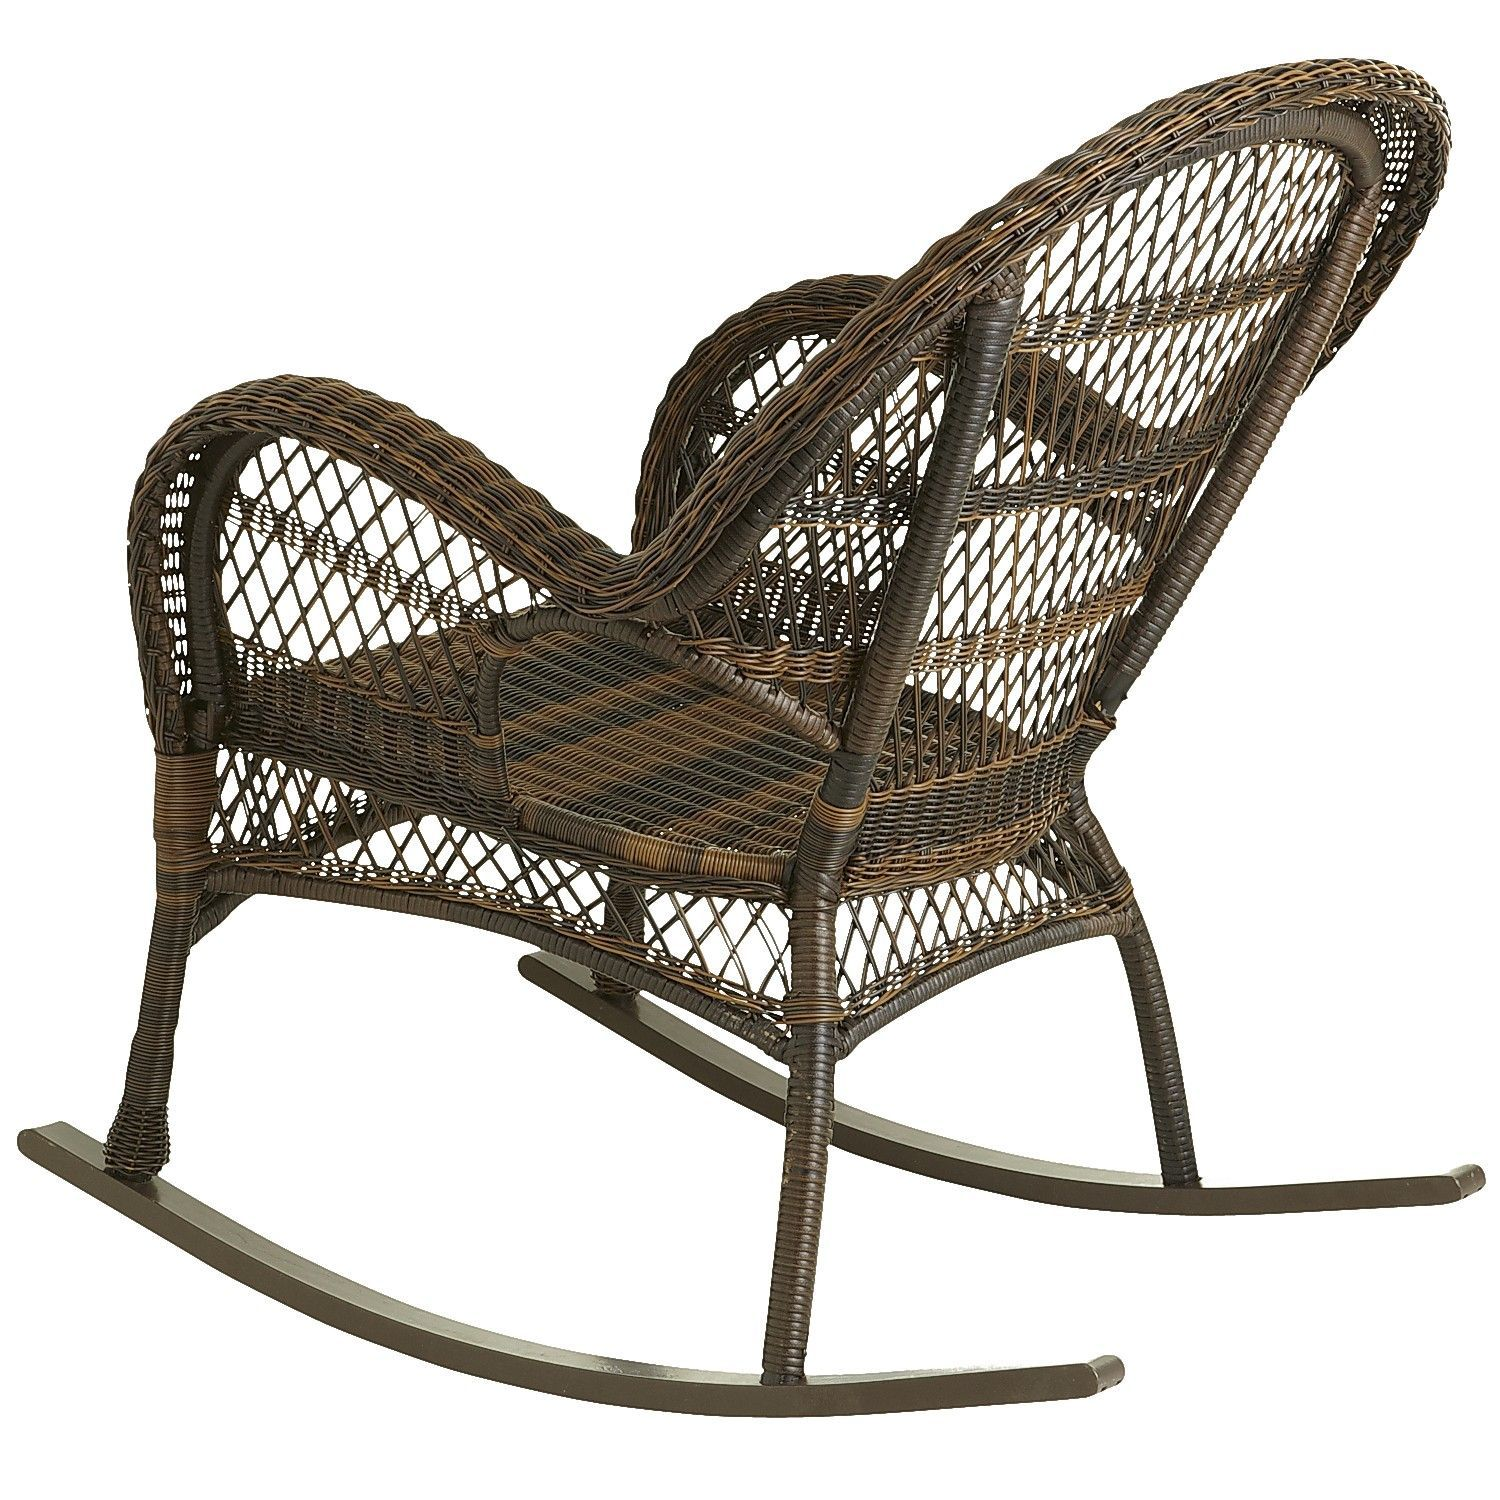 Null Rocking Chair Outdoor Chairs Chair